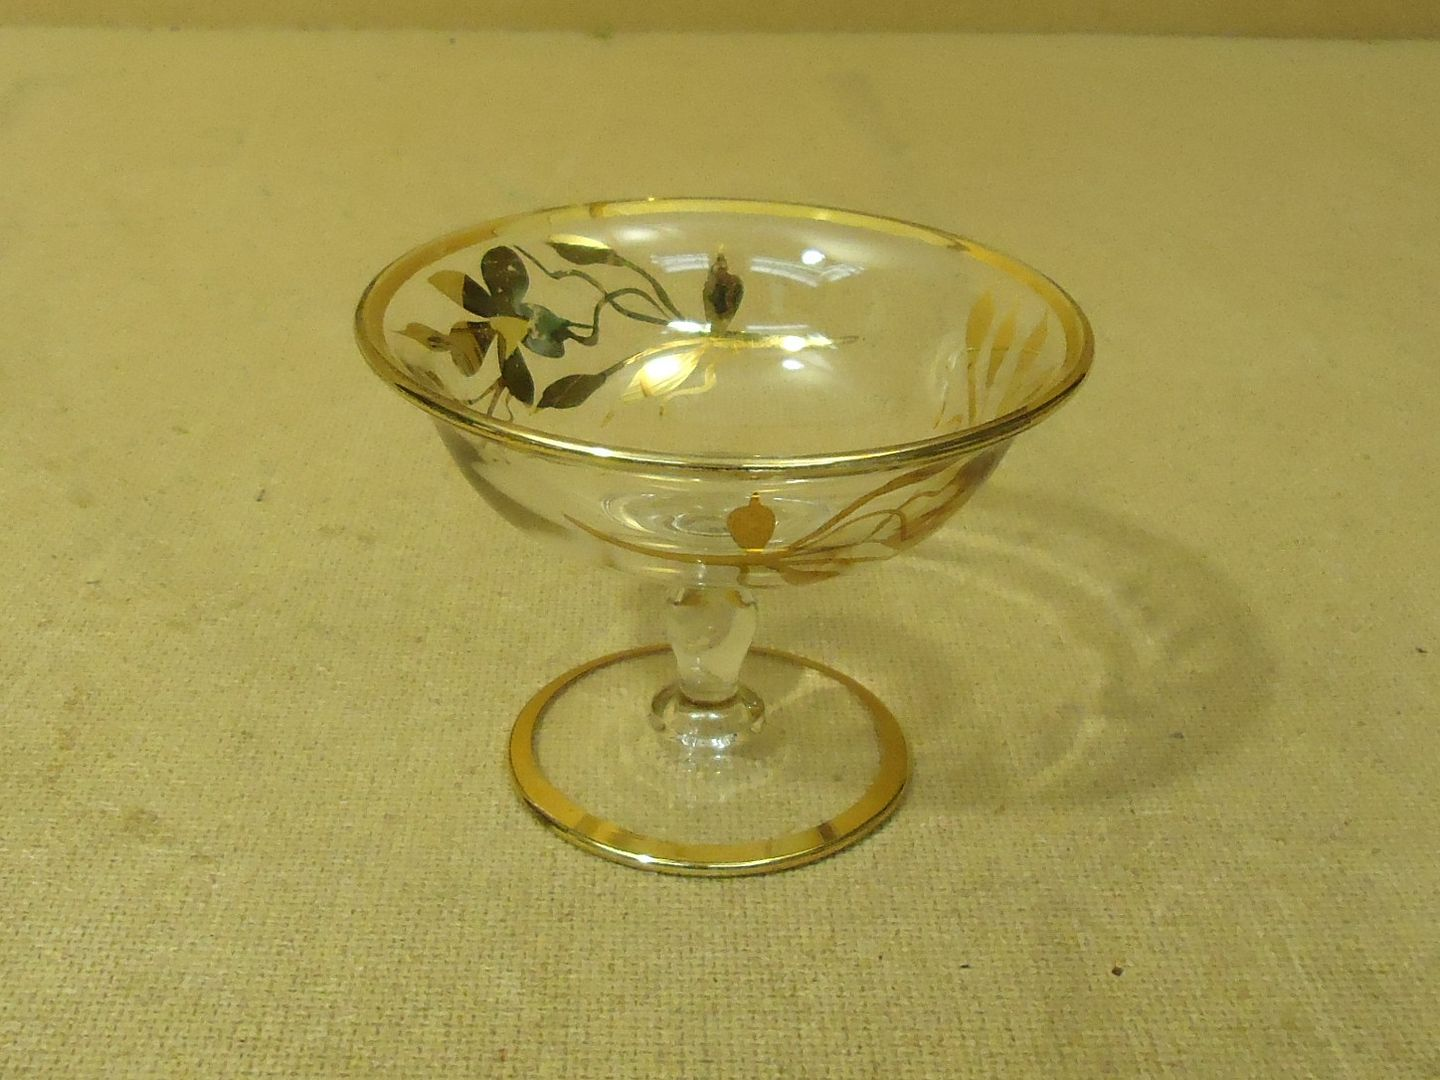 lm7410 111712-214n Designer Bowl with Gold Trim 5in Diameter x 3 3/4in H Clears/Golds Floral Glass